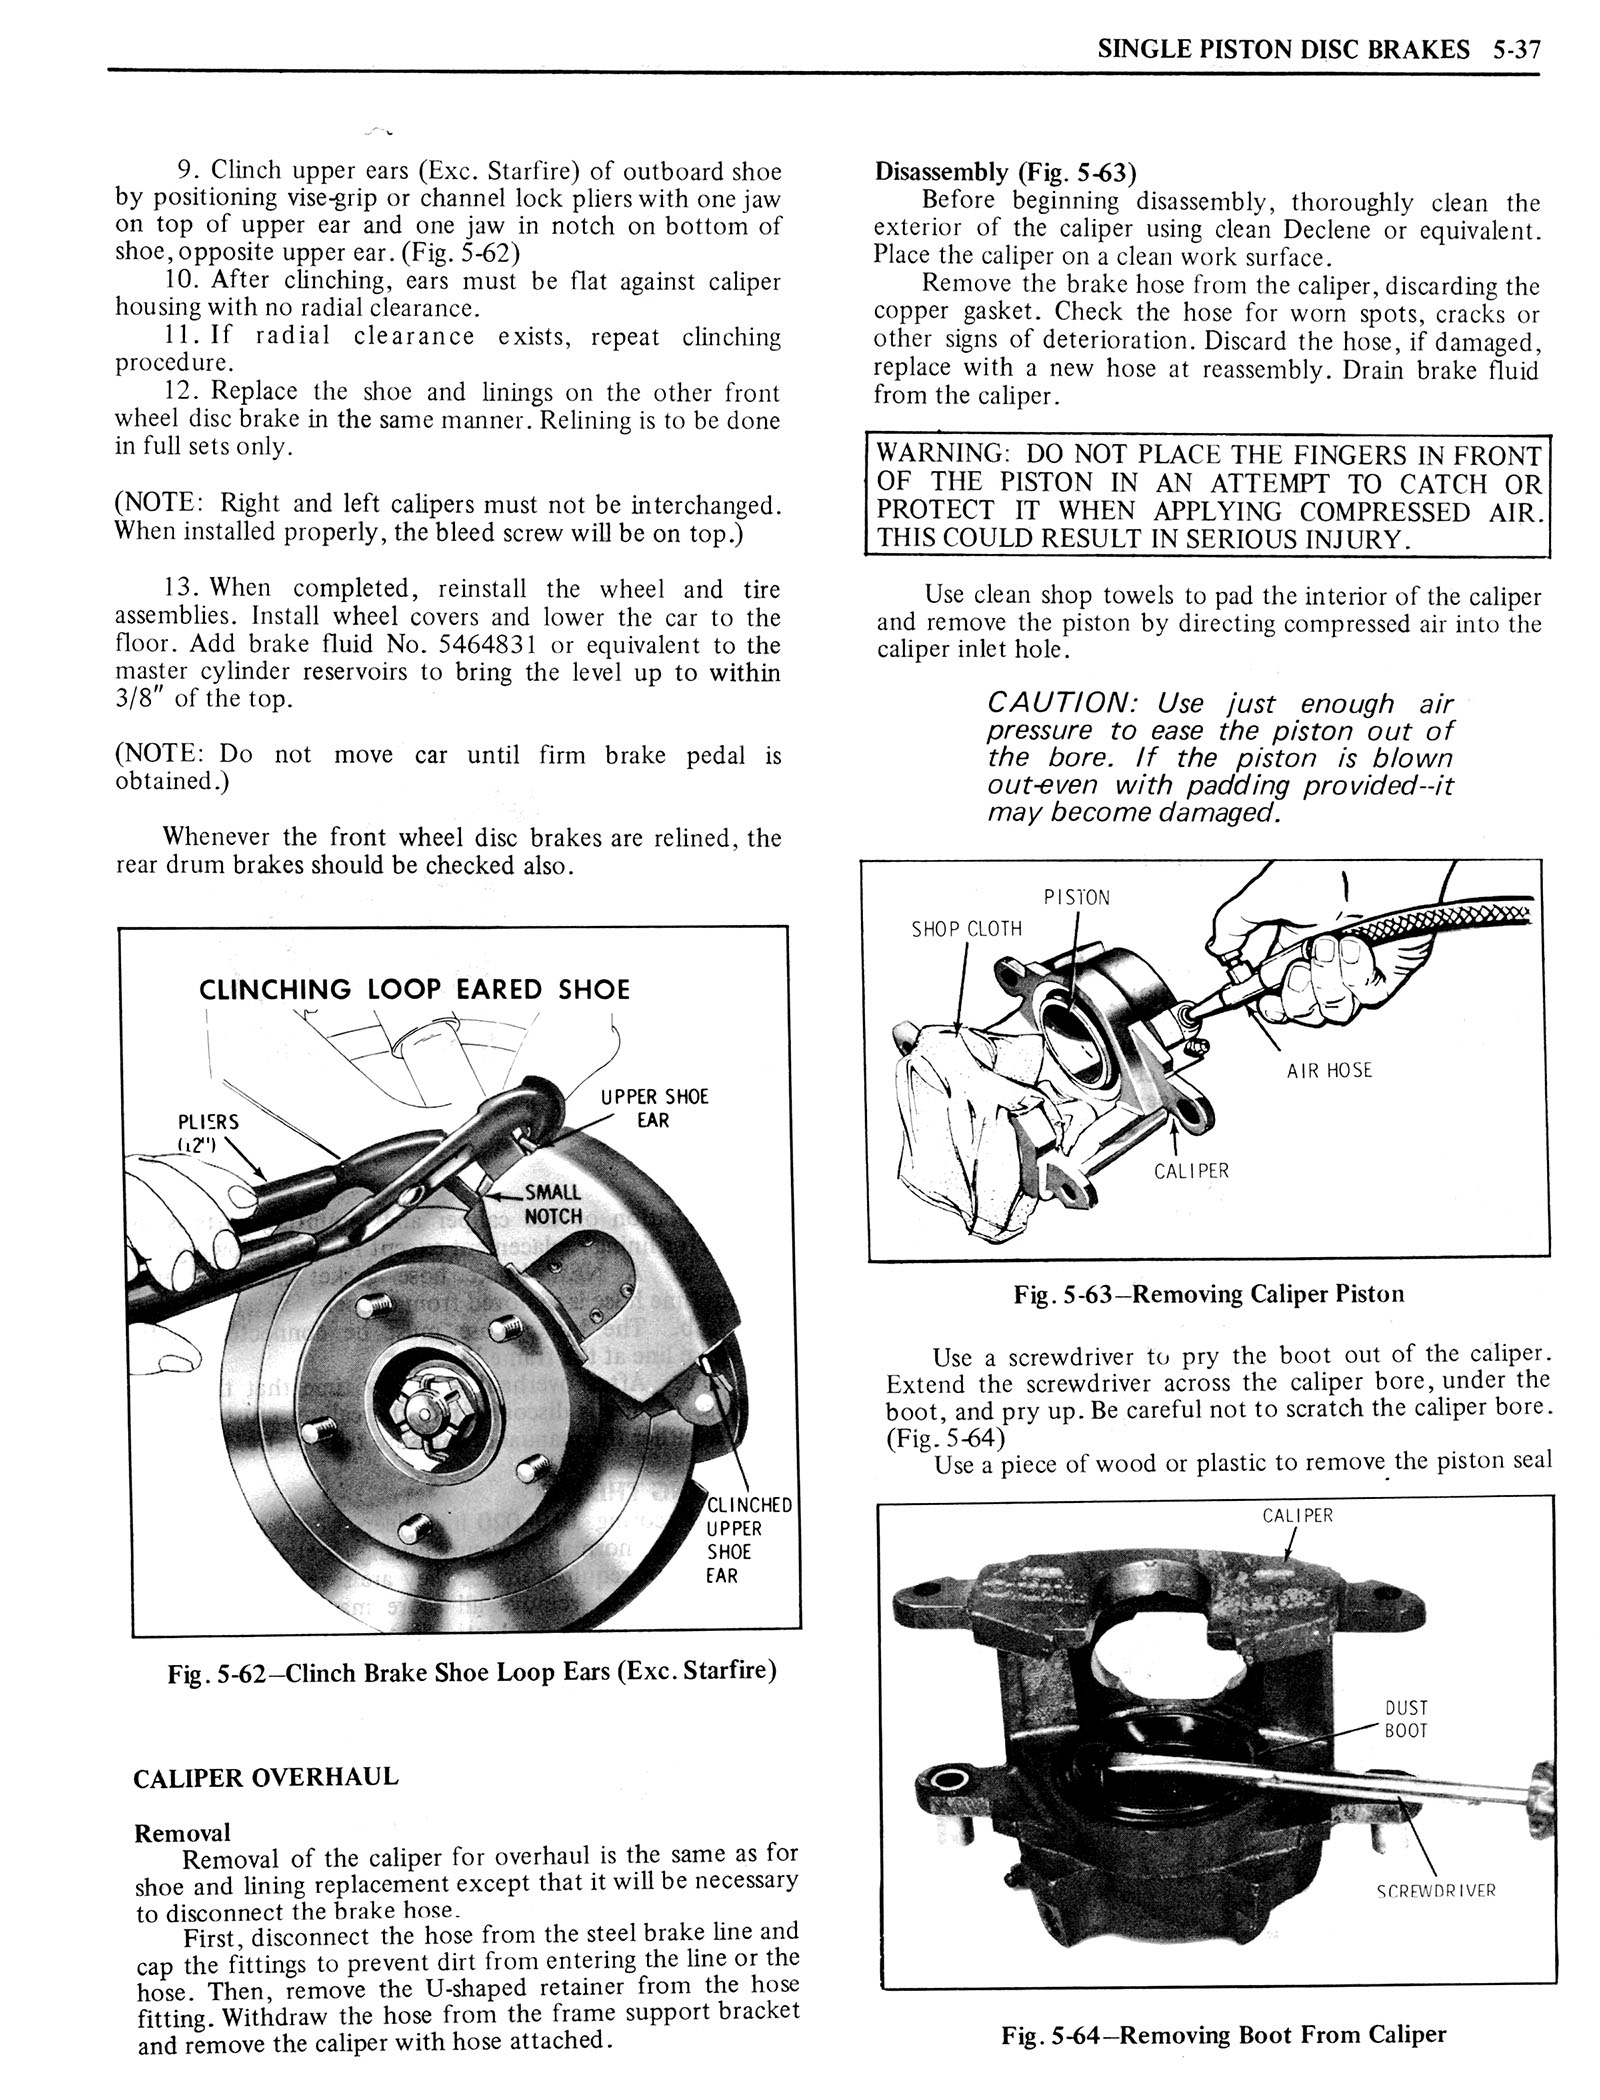 1976 Oldsmobile Service Manual page 367 of 1390